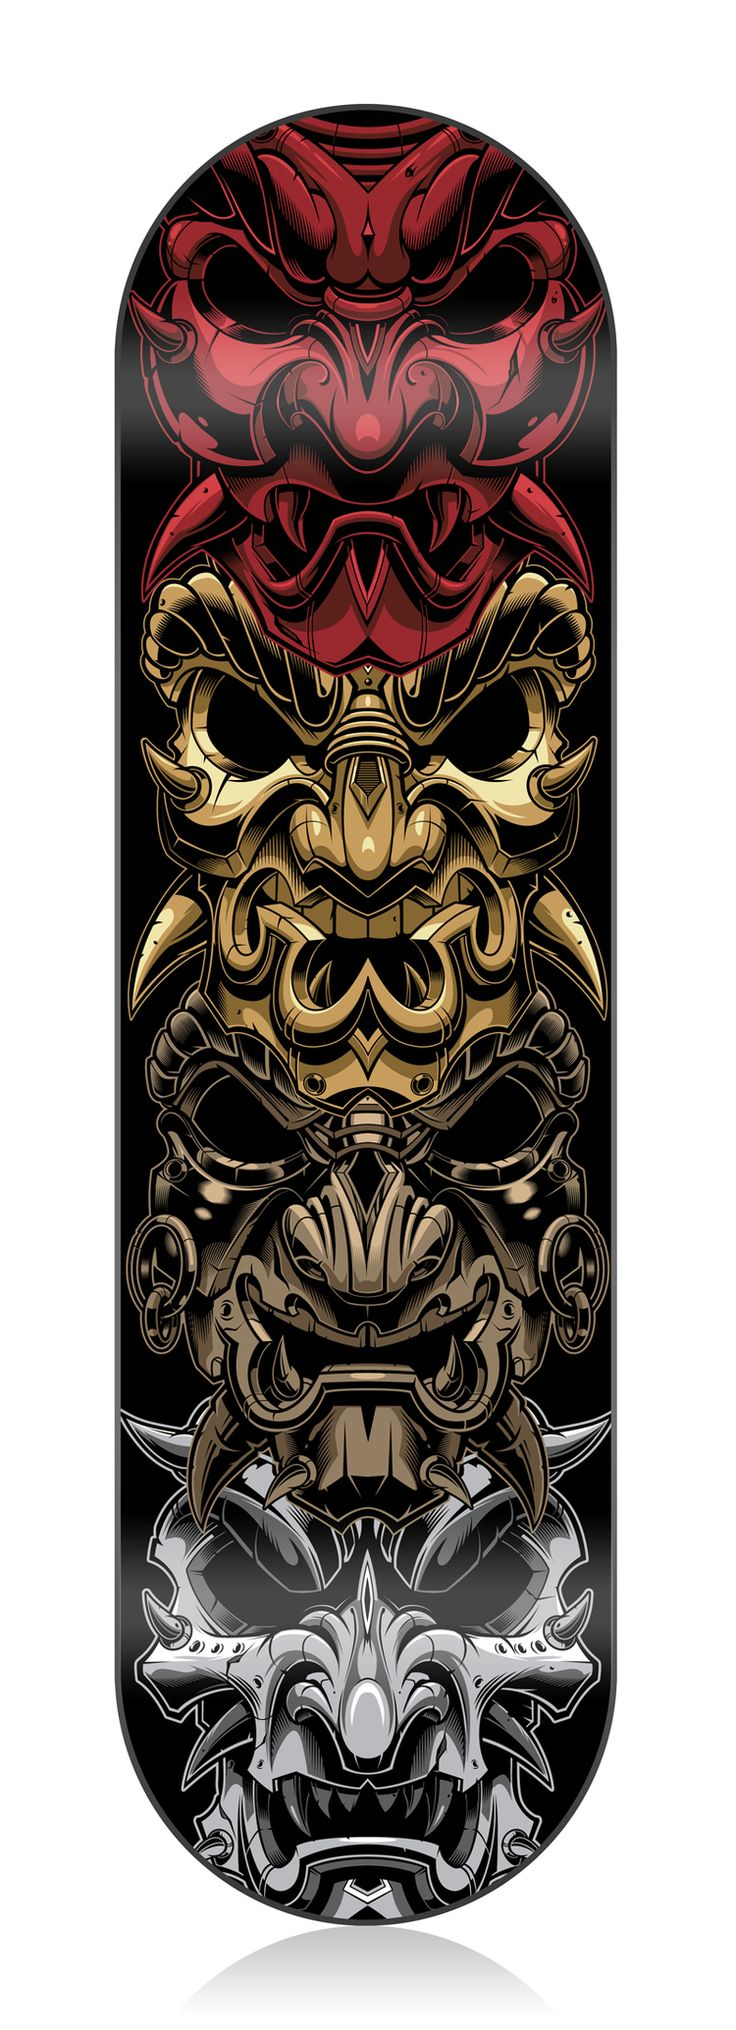 35 best images about oni on pinterest voodoo spells don ed hardy and love spells. Black Bedroom Furniture Sets. Home Design Ideas